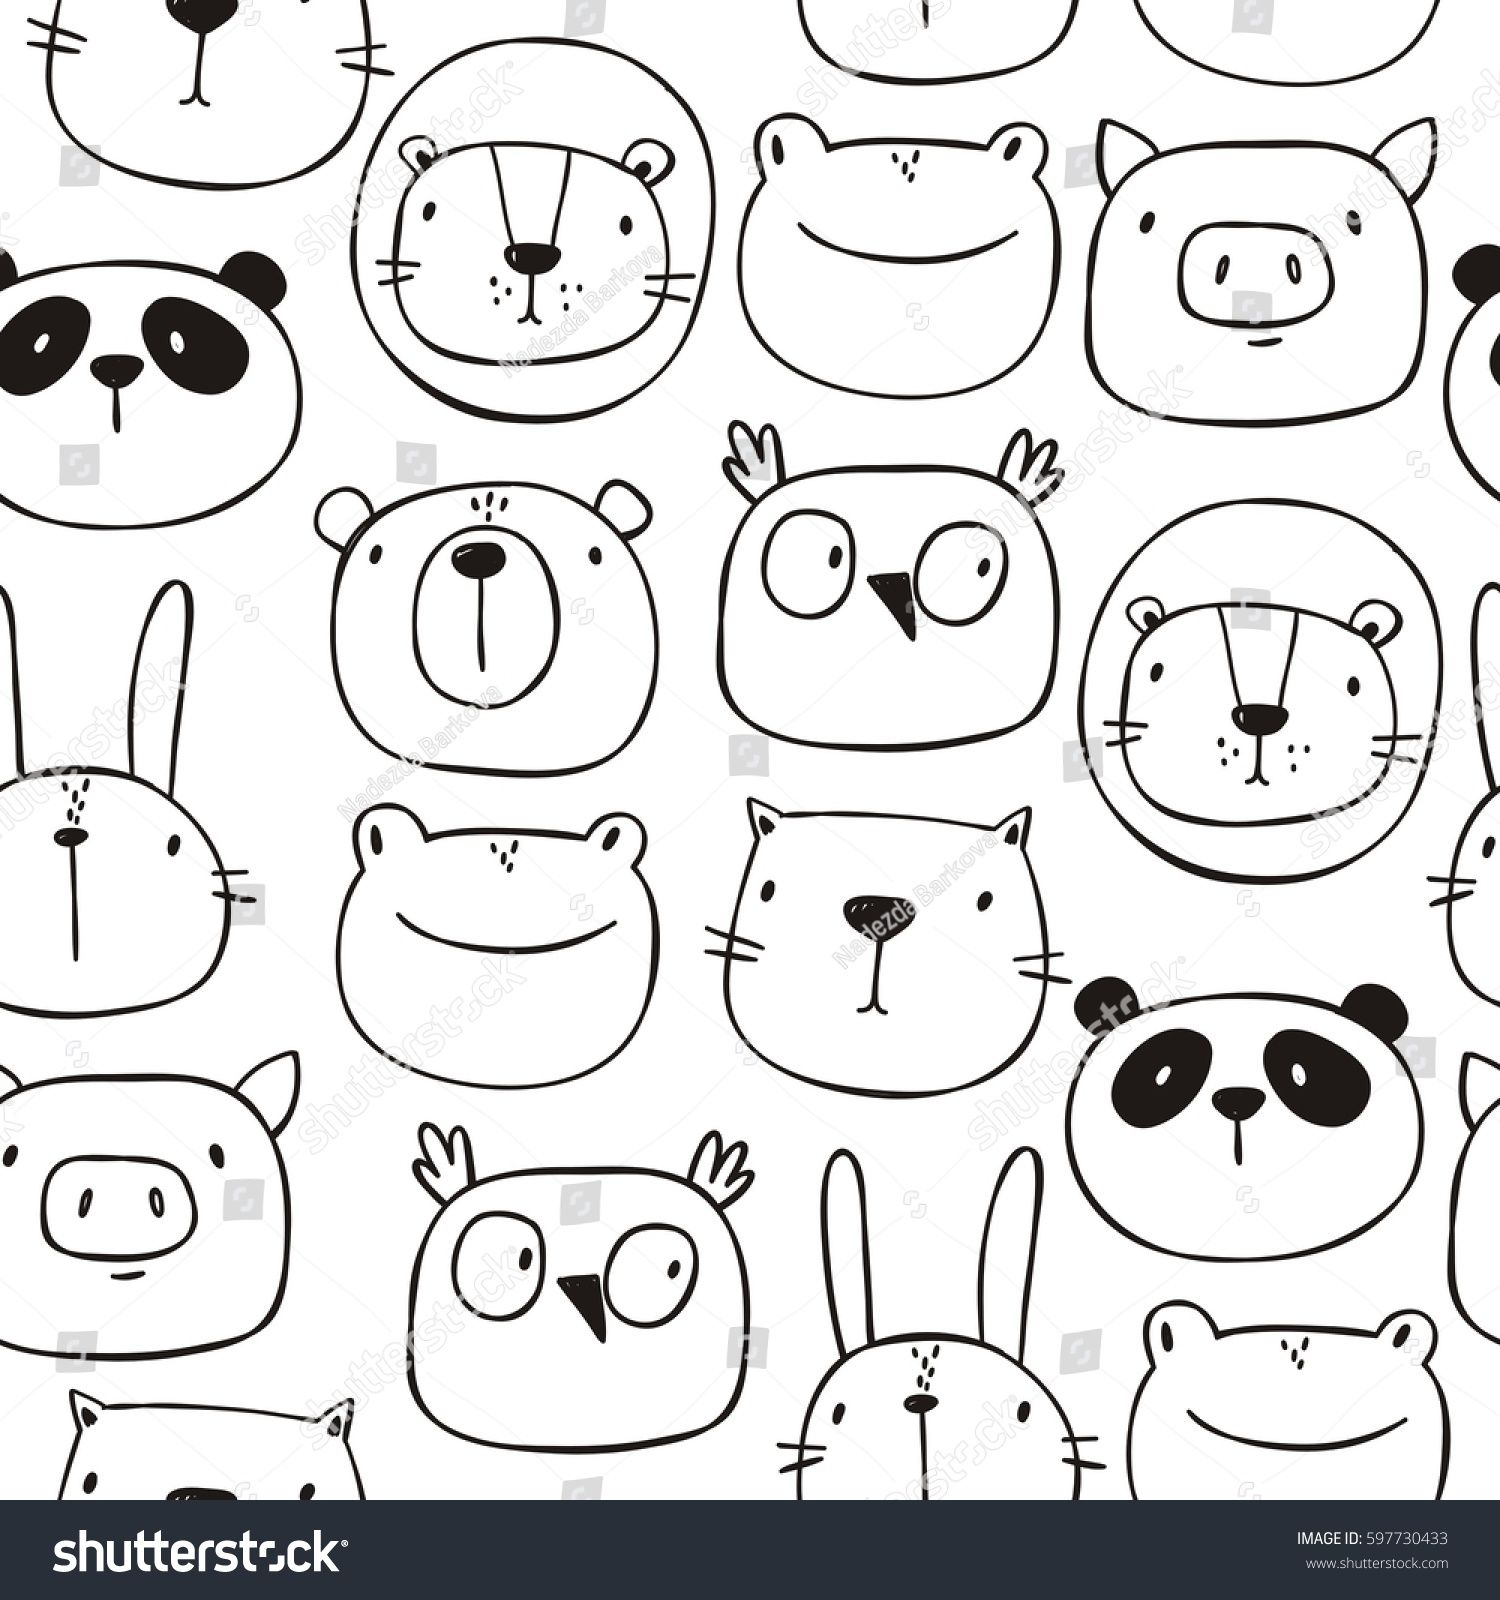 Cute Print With Cat Lion Bear Pig Frog Panda Hare Owl Hand Drawn Print Seamless Pattern Image Vector Art Drawings For Kids Doodles Animal Doodles